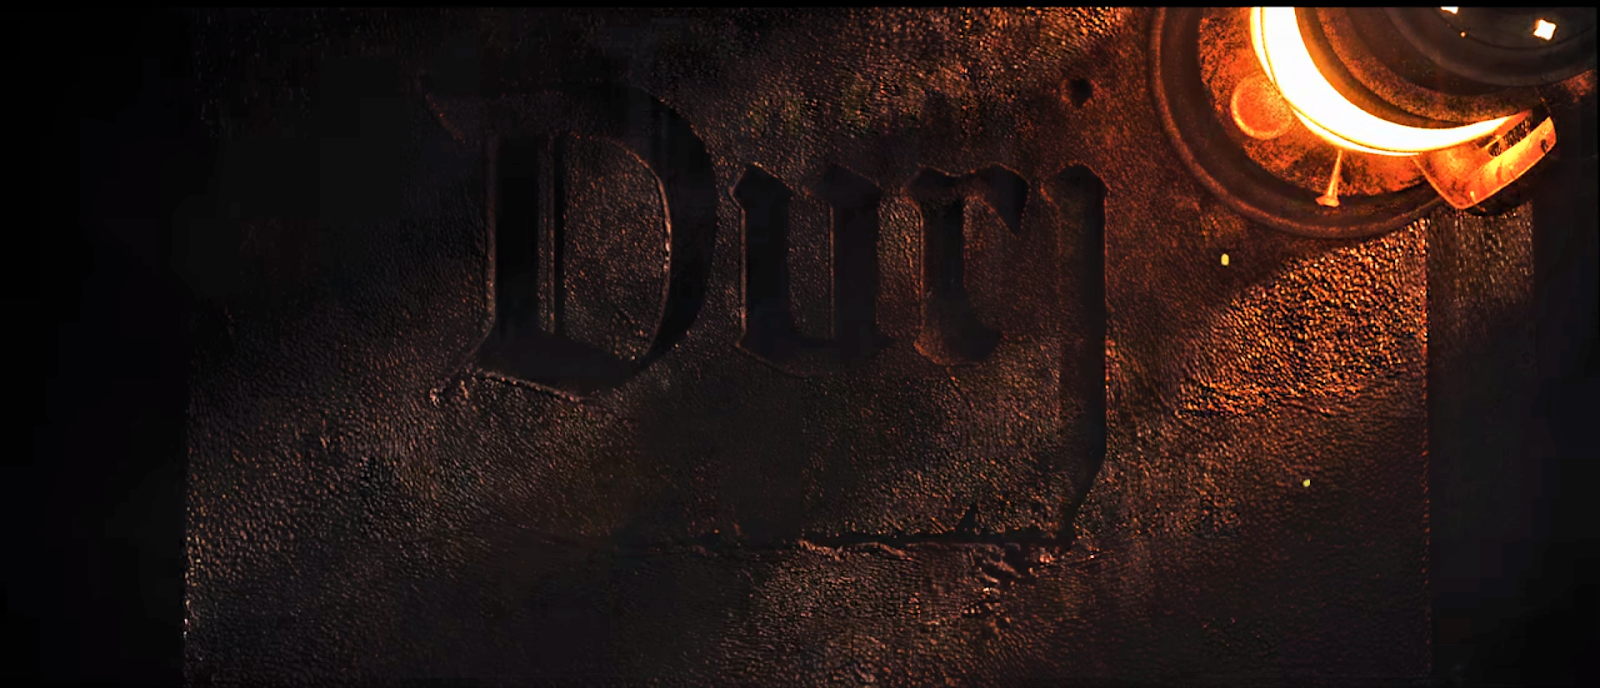 Trailer Of Pakistan's Upcoming Feature Film 'Durj' Is Out Now